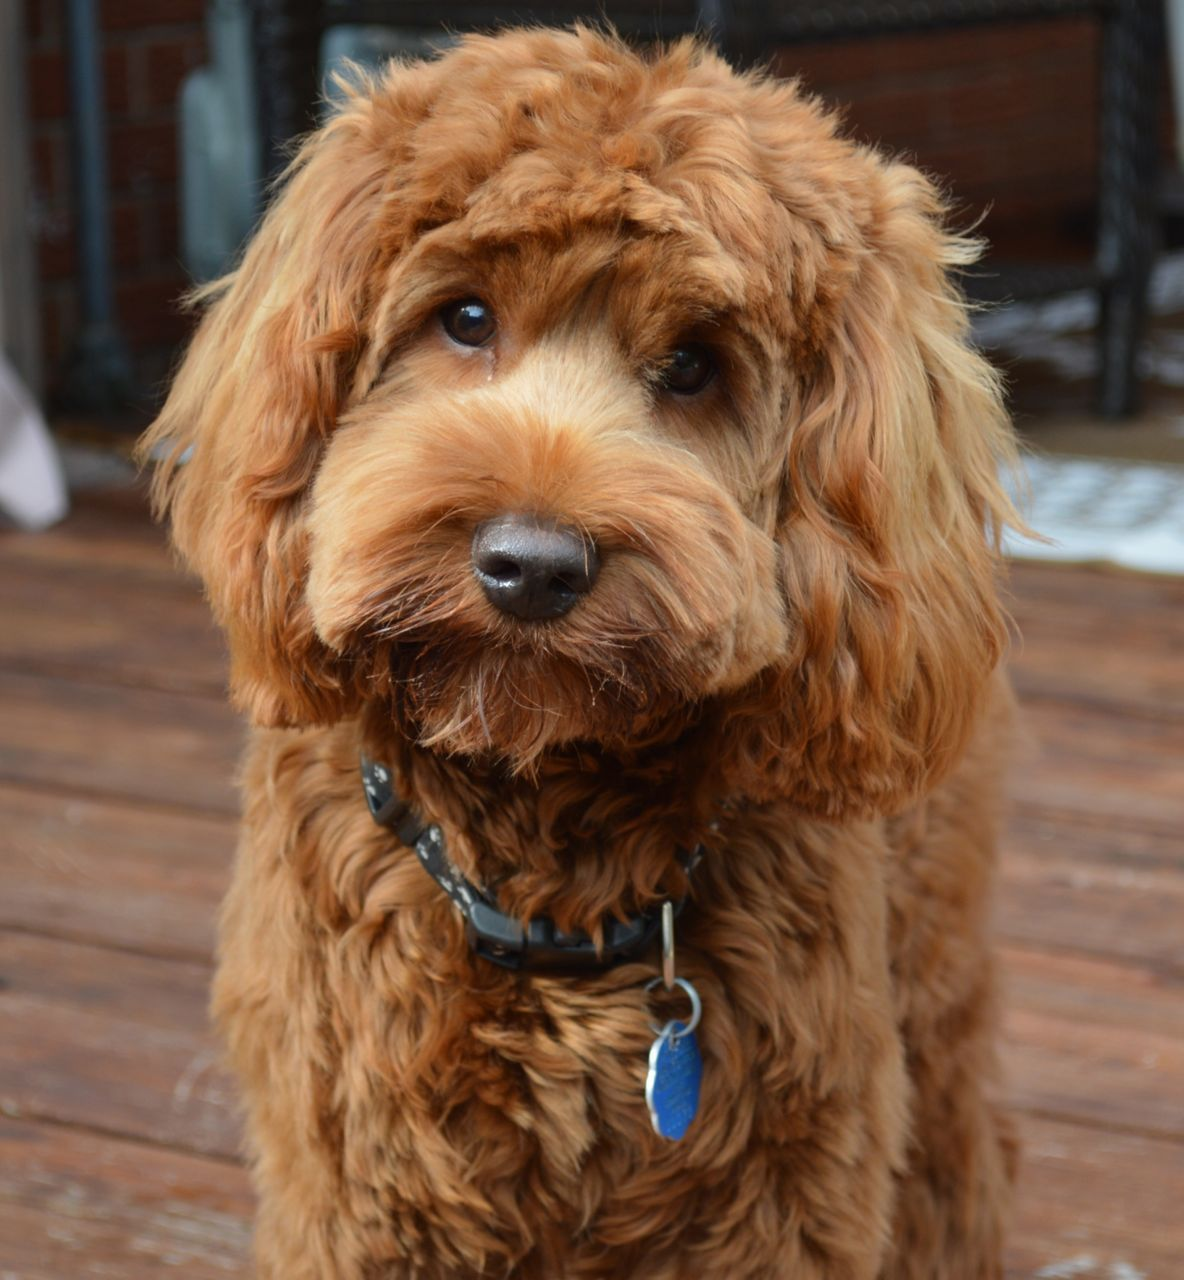 Choosing Between Labradoodle Haircuts For Your Puppy